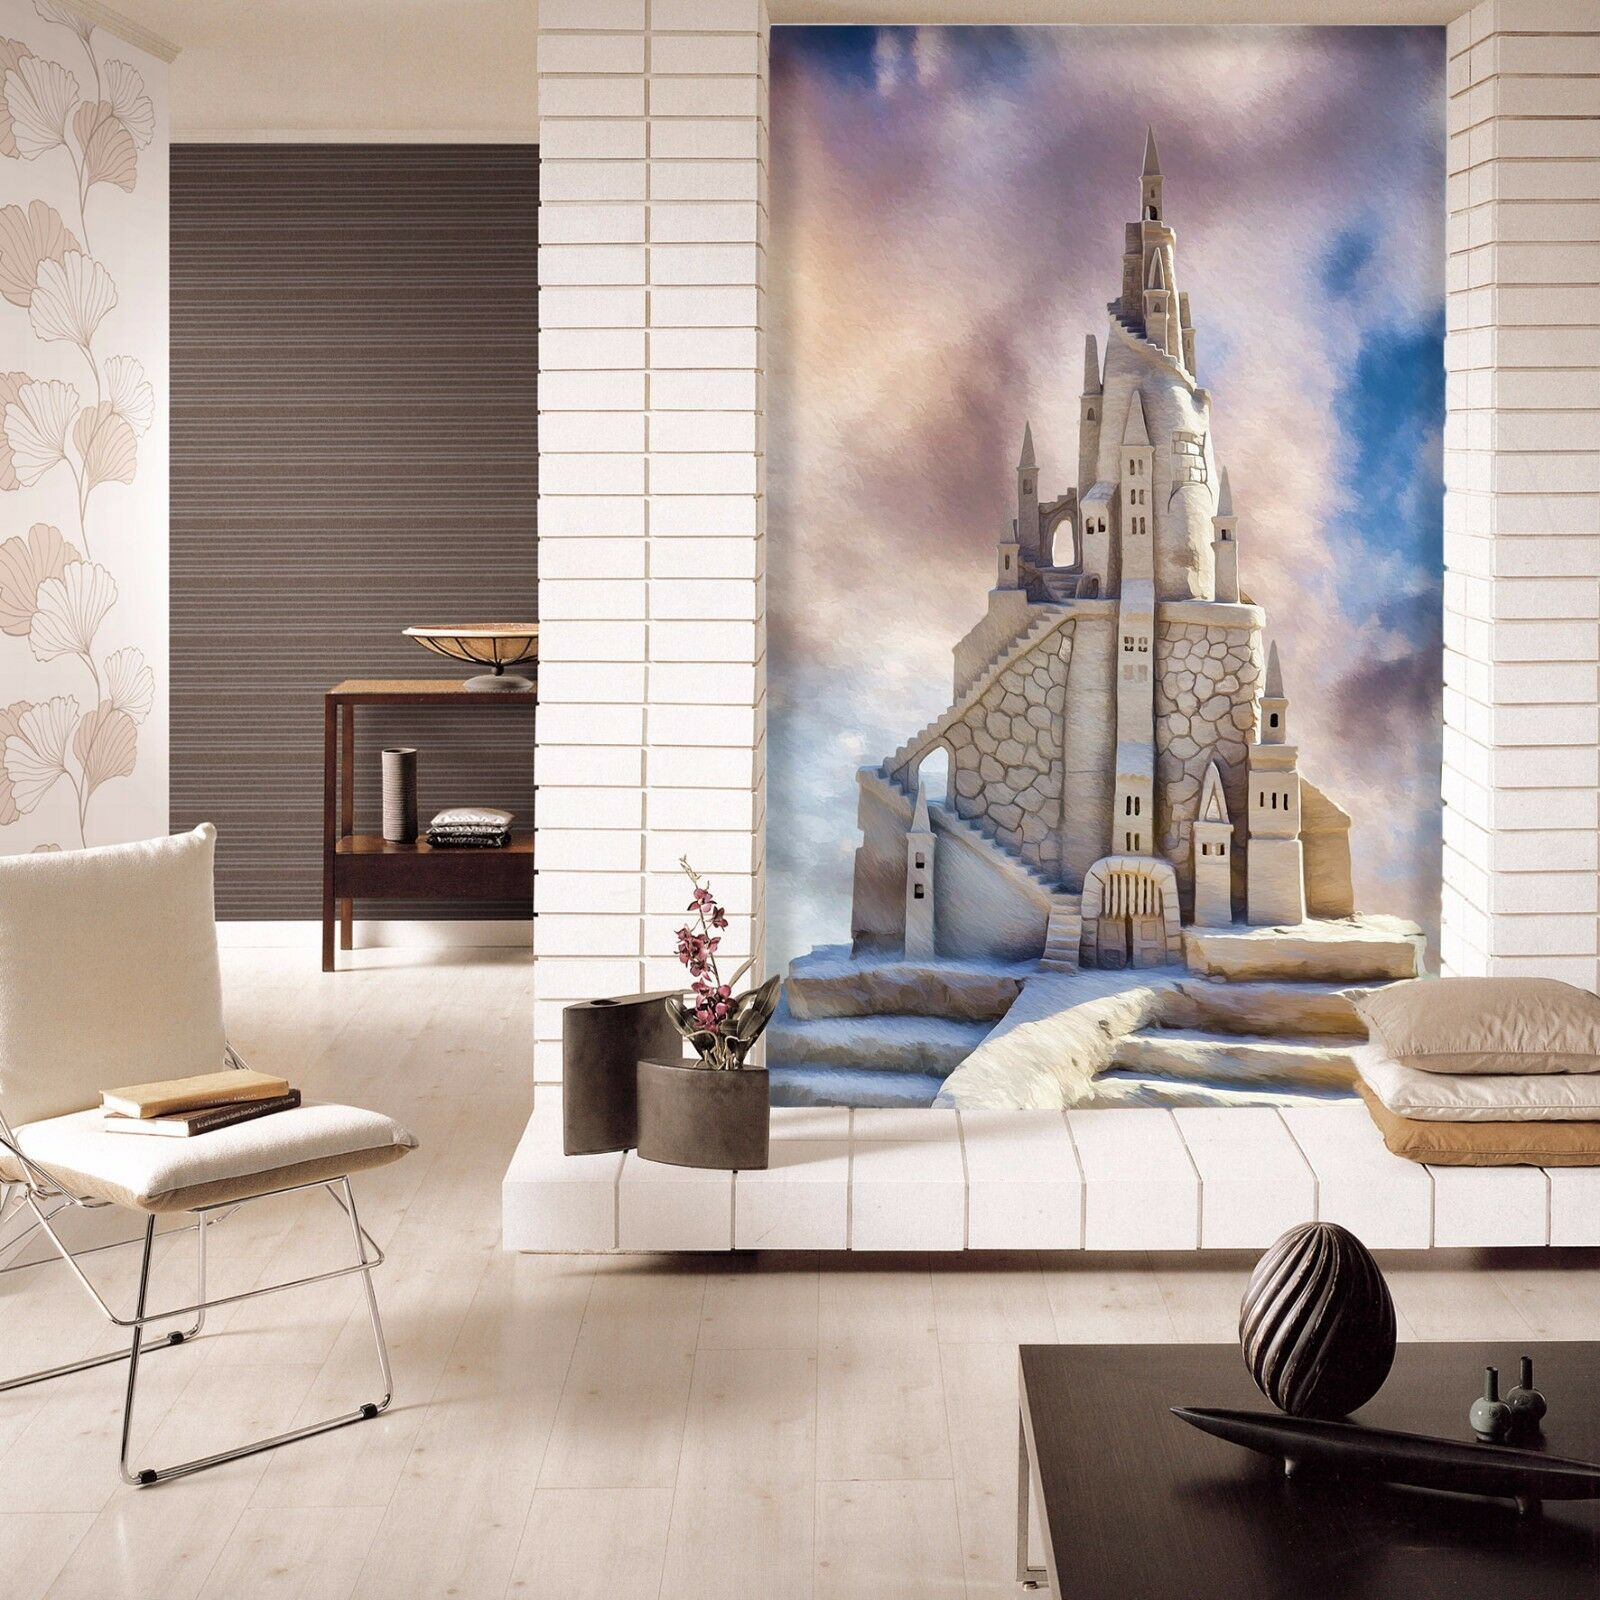 3D castle stone picture Wall Paper Print Decal Wall Wall Wall Deco Indoor wall Mural e64163